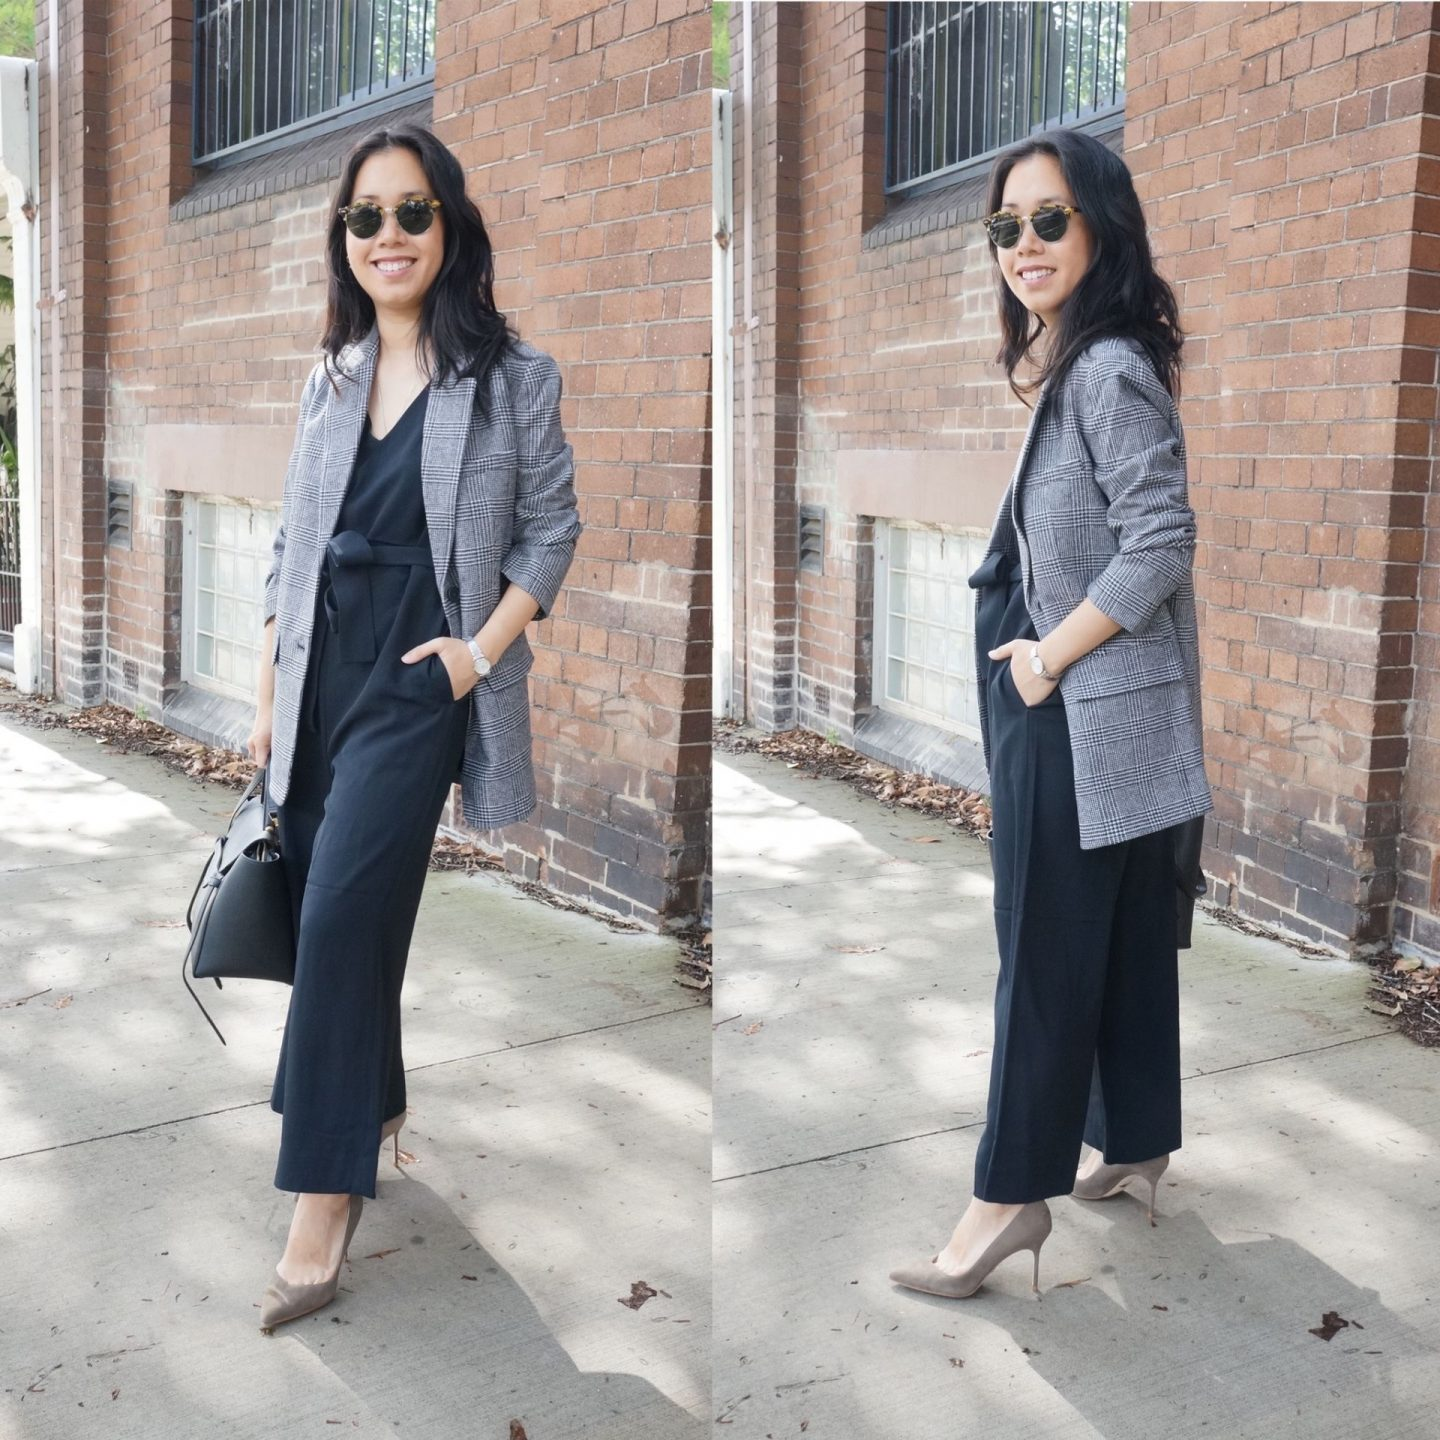 collage of woman wearing everlane japanese goweave essential jumpsuit styled with everlane oversized wool blazer and sarah flint pumps